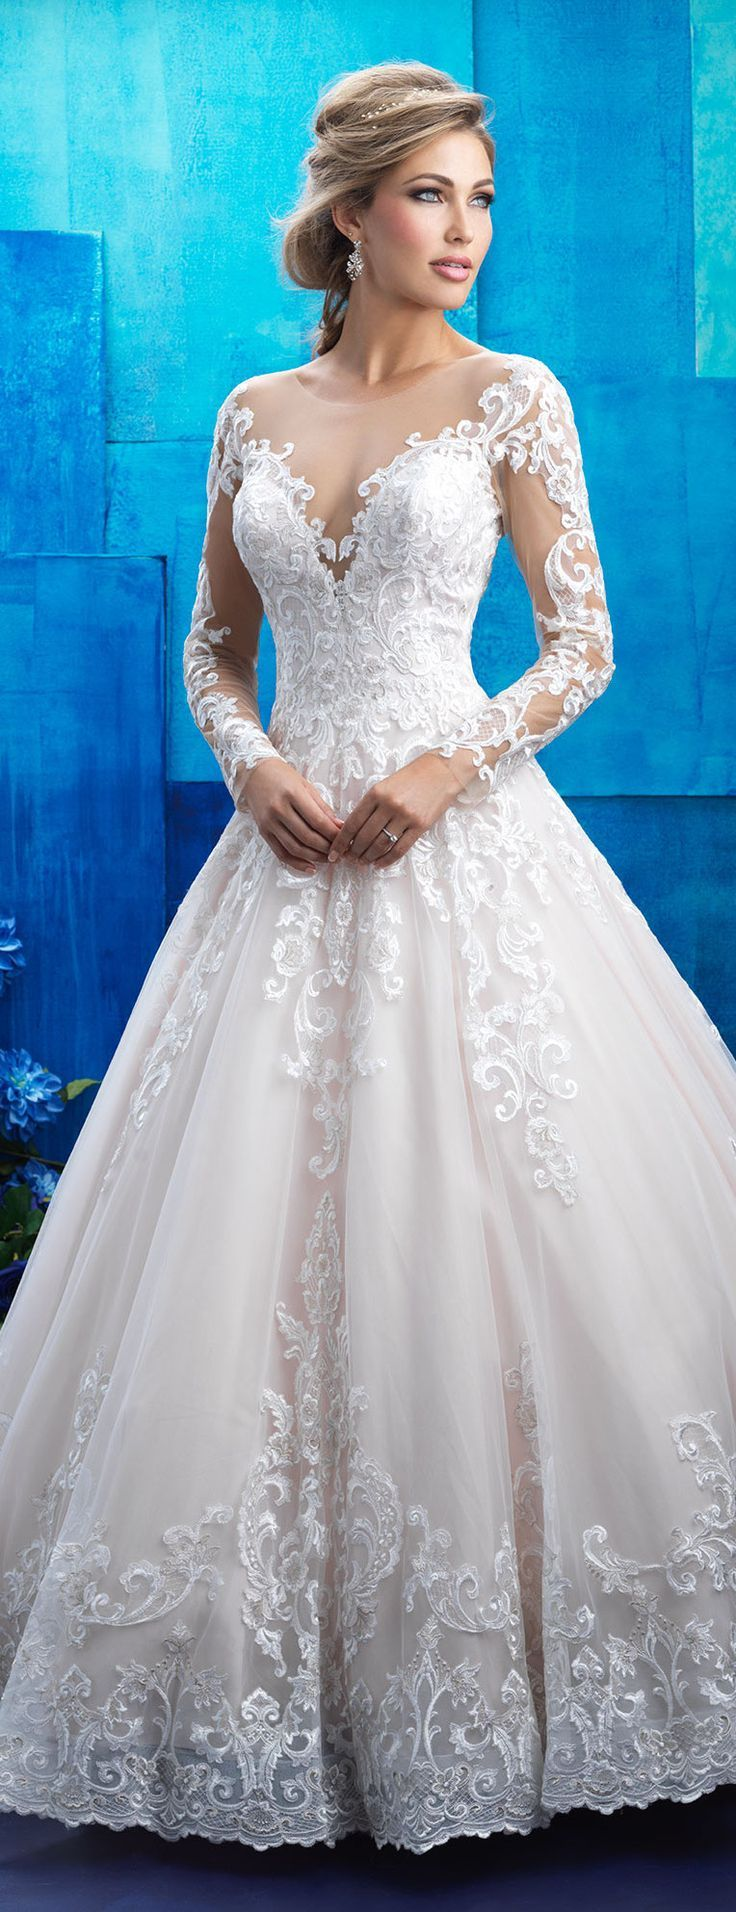 Ball Gown Wedding Dresses : Long sleeve lace ballgown wedding dress by Allure Bridals 2017 Collection